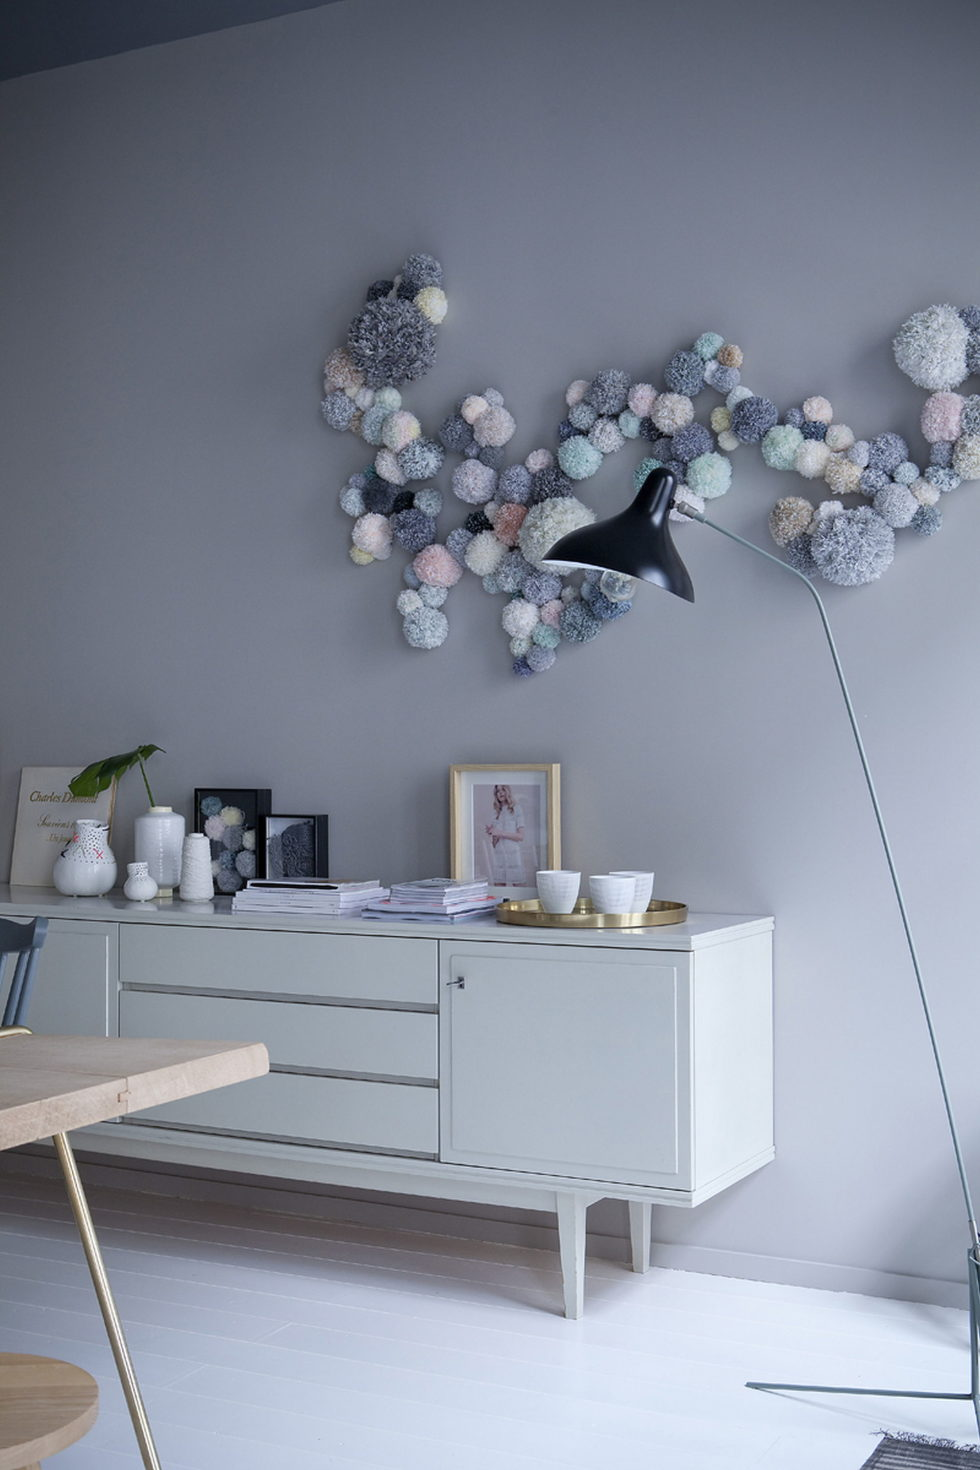 chez-marie-sixtine-the-apartment-for-guests-in-marie-sixtine-store-27